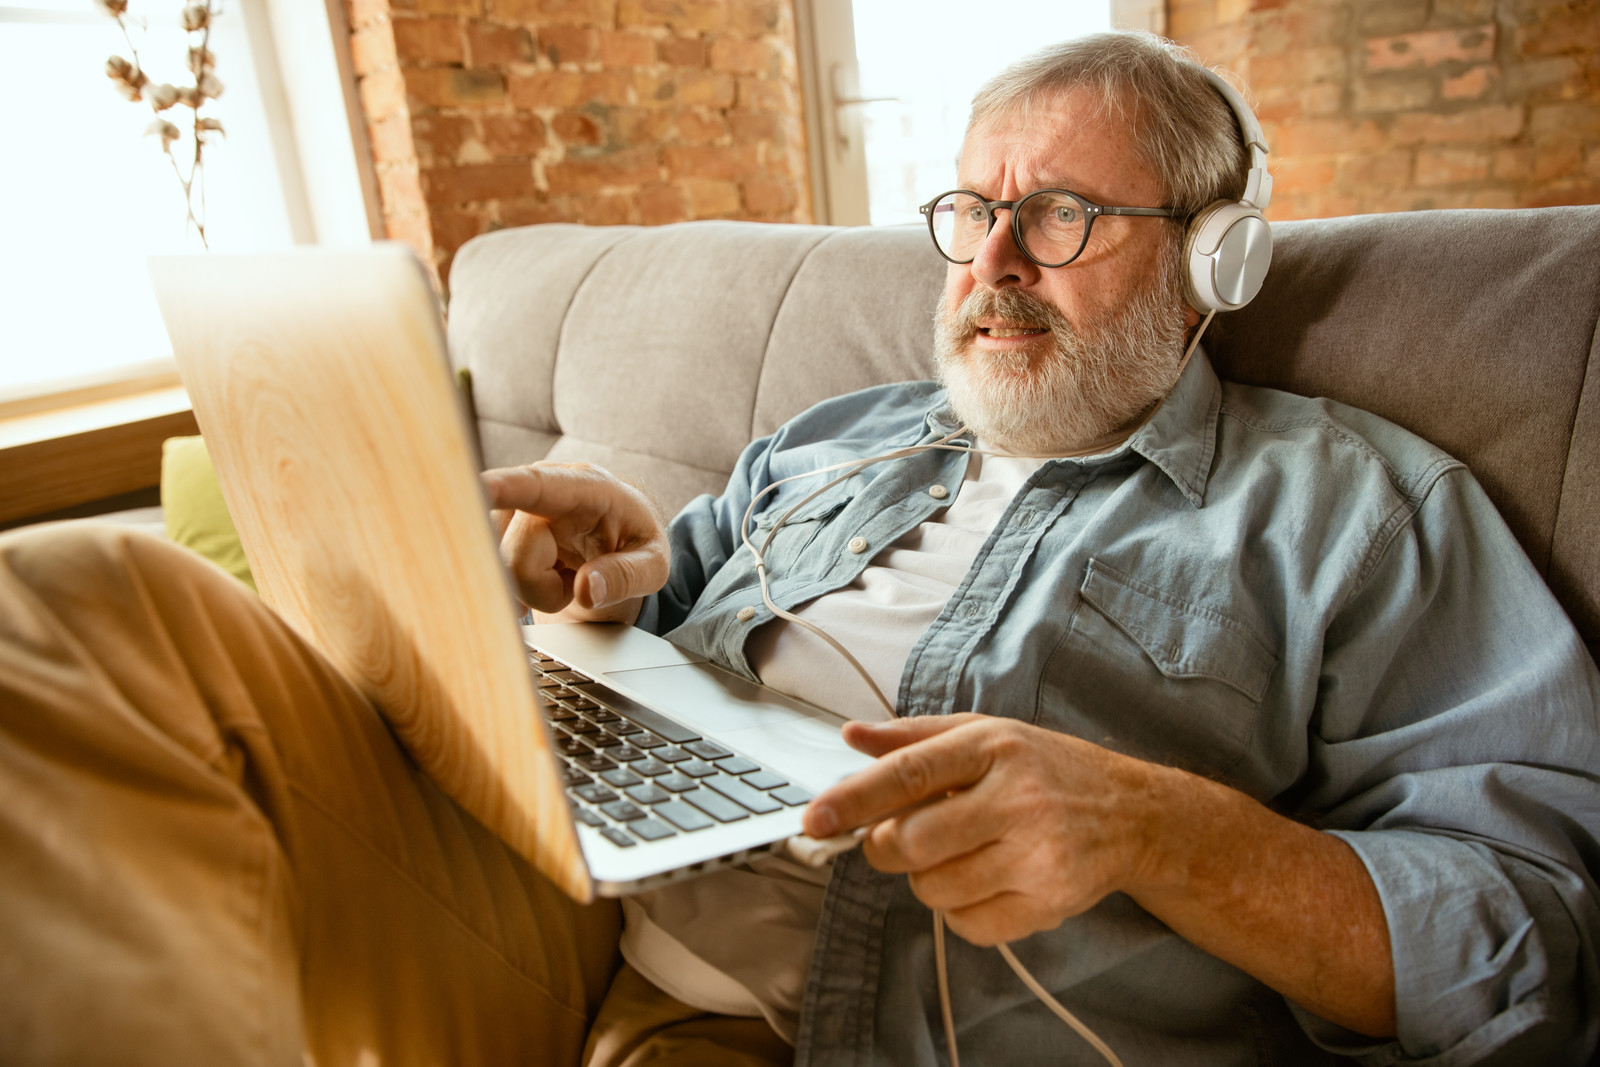 Senior man in a denim shirt sitting on a couch pointing at his laptop with headphones on